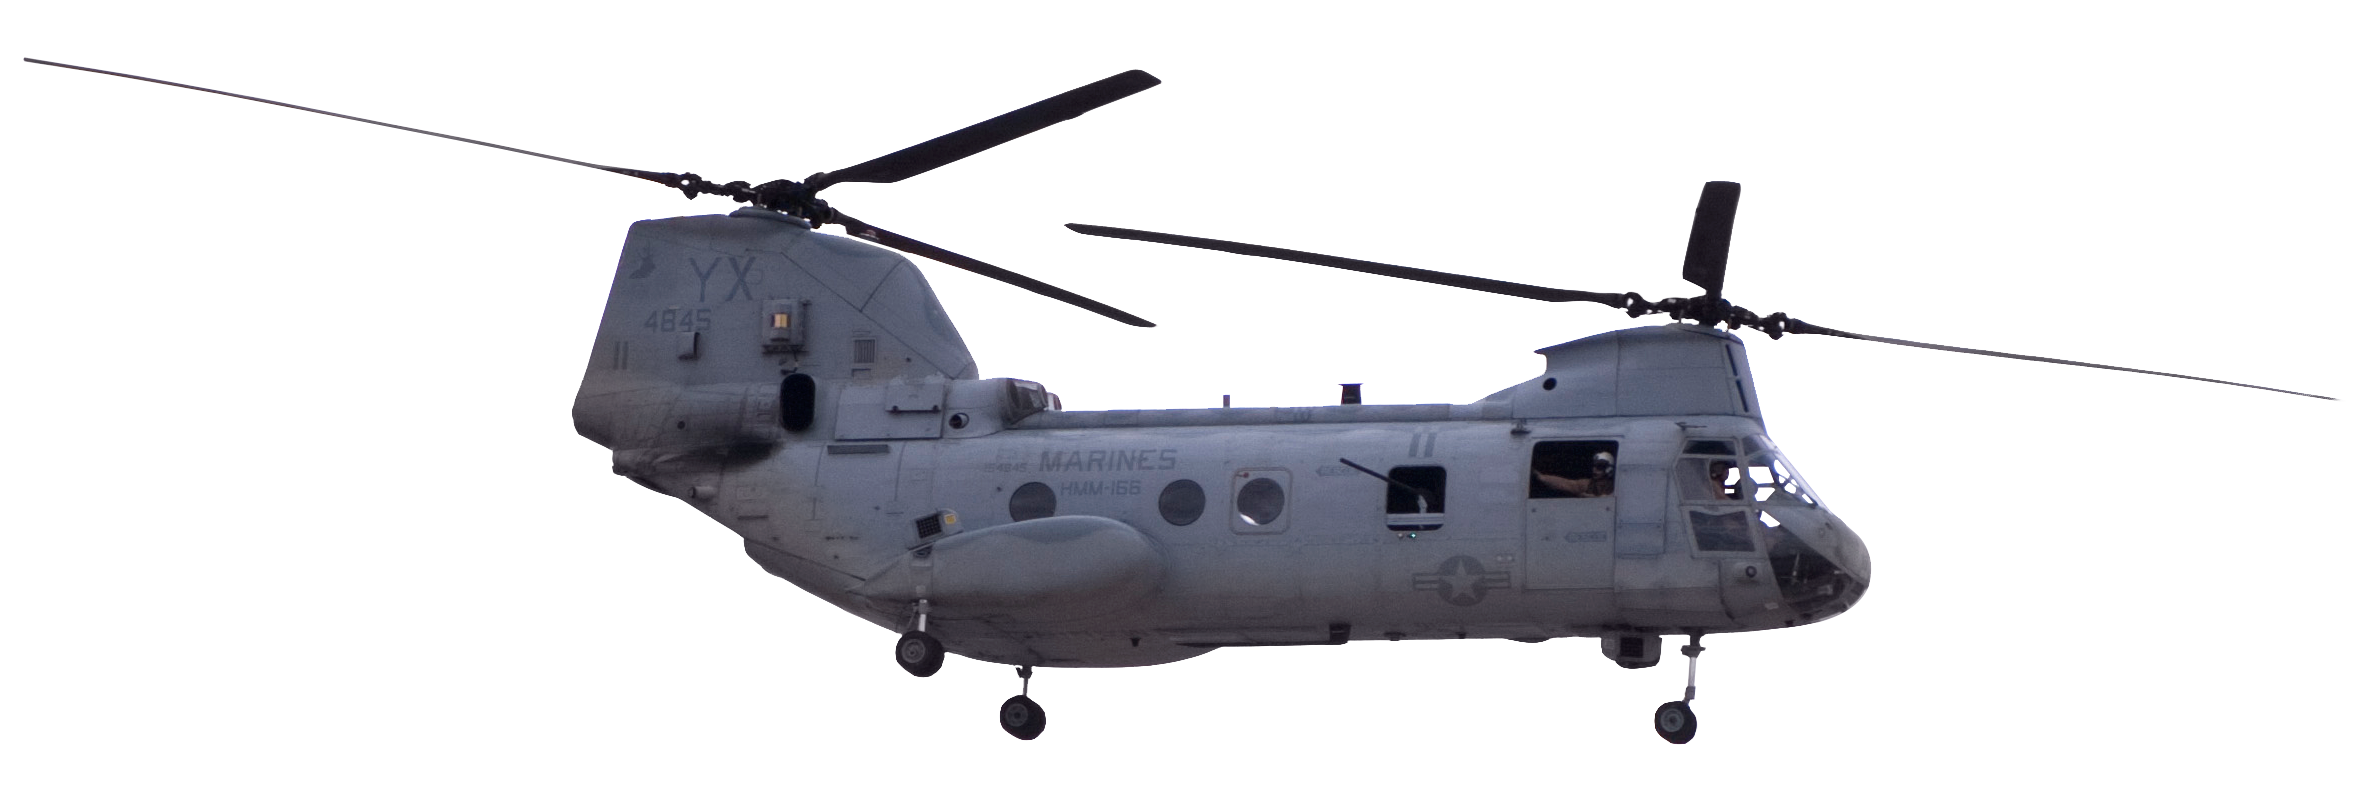 Military helicopter png. Transparent image pngpix